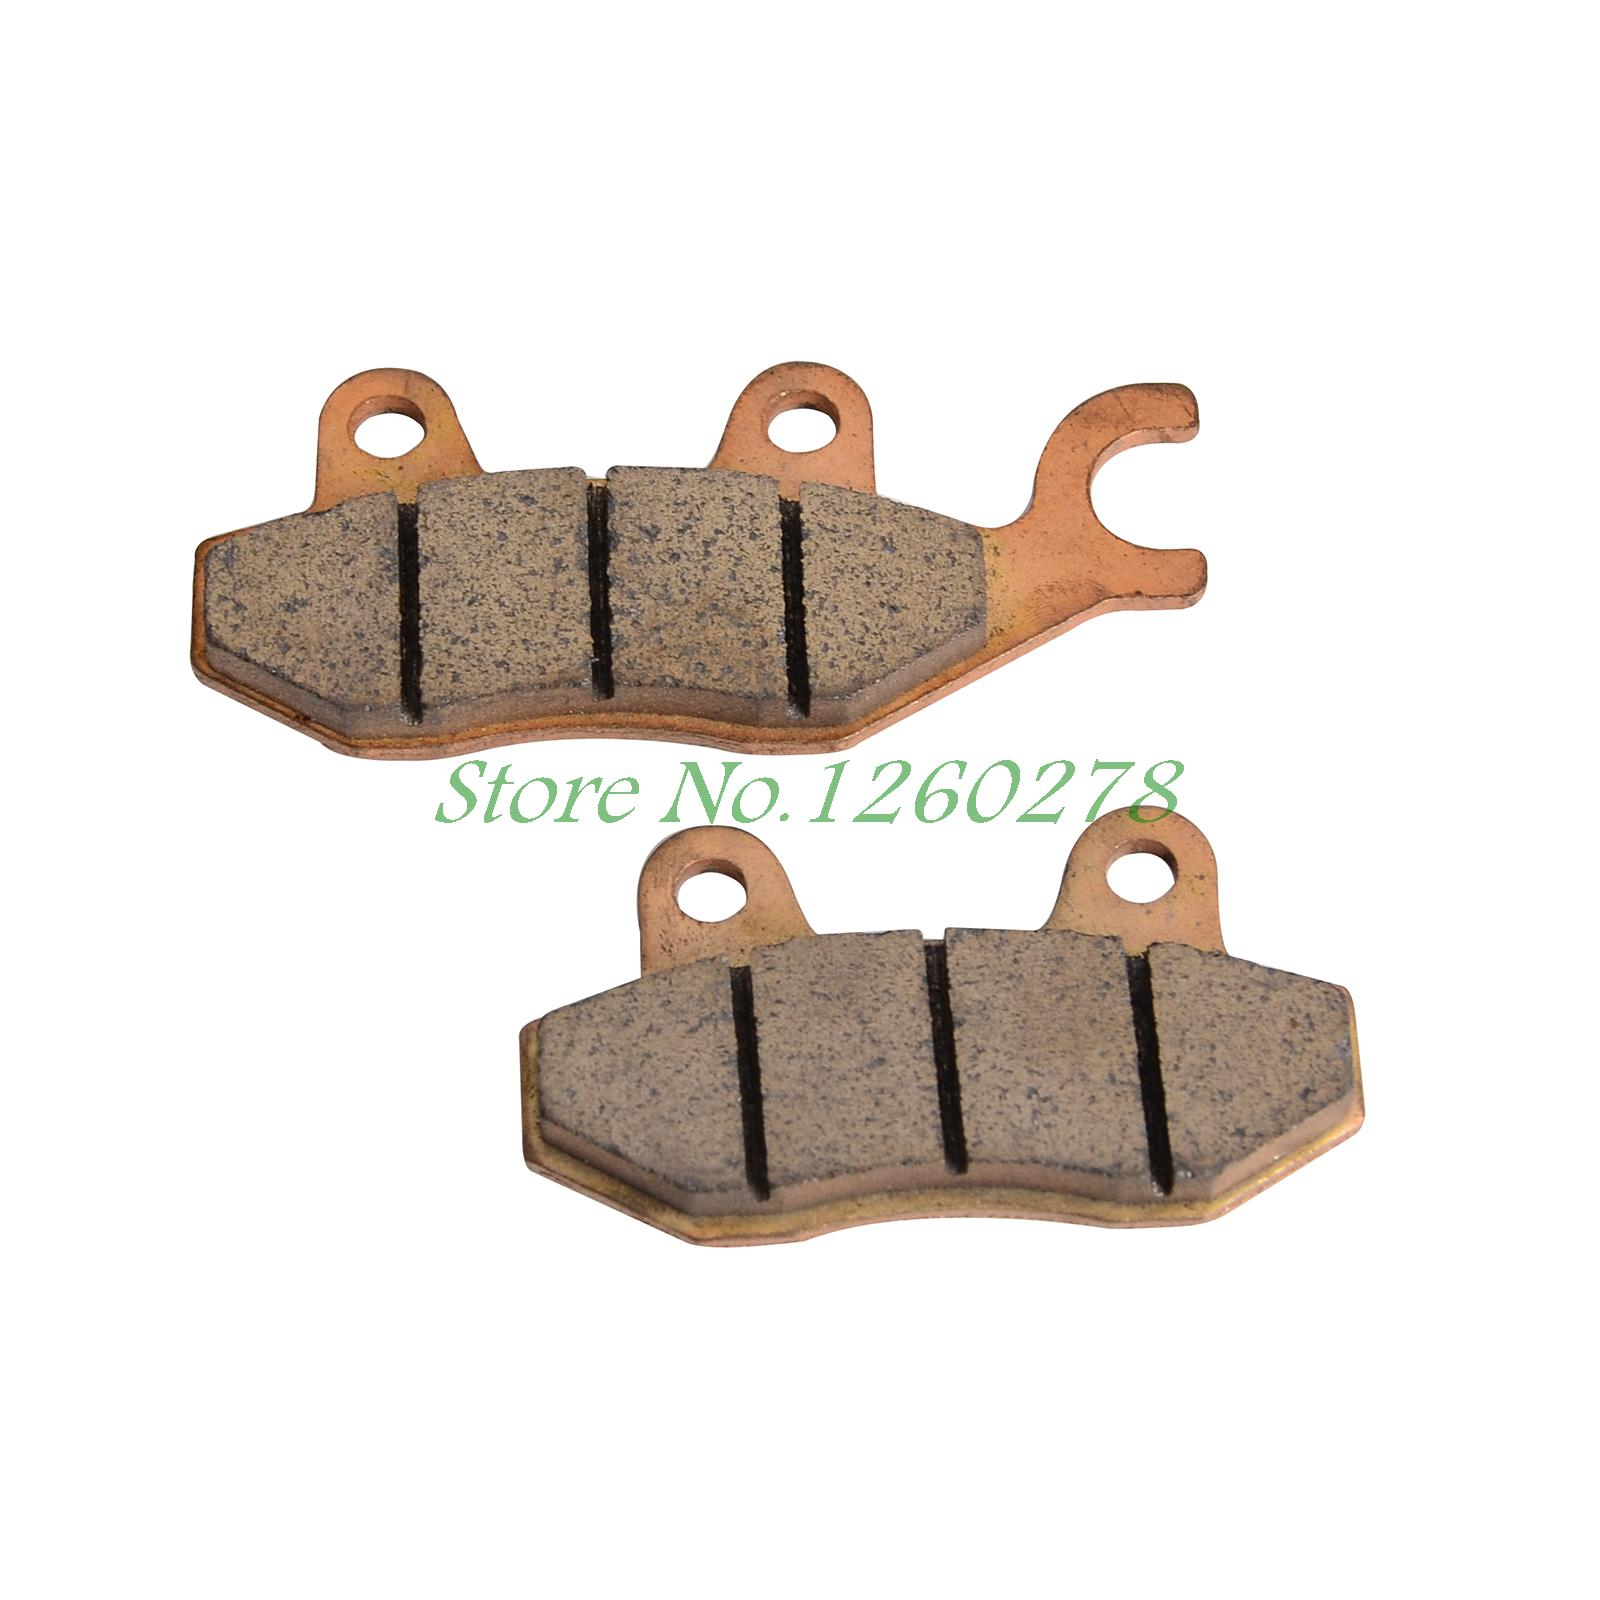 Motorcycle Right Rear Brake Pads For Aall <font><b>Hisun</b></font> UTV400 UTV500 UTV550 UTV700 UTV800 NEW image